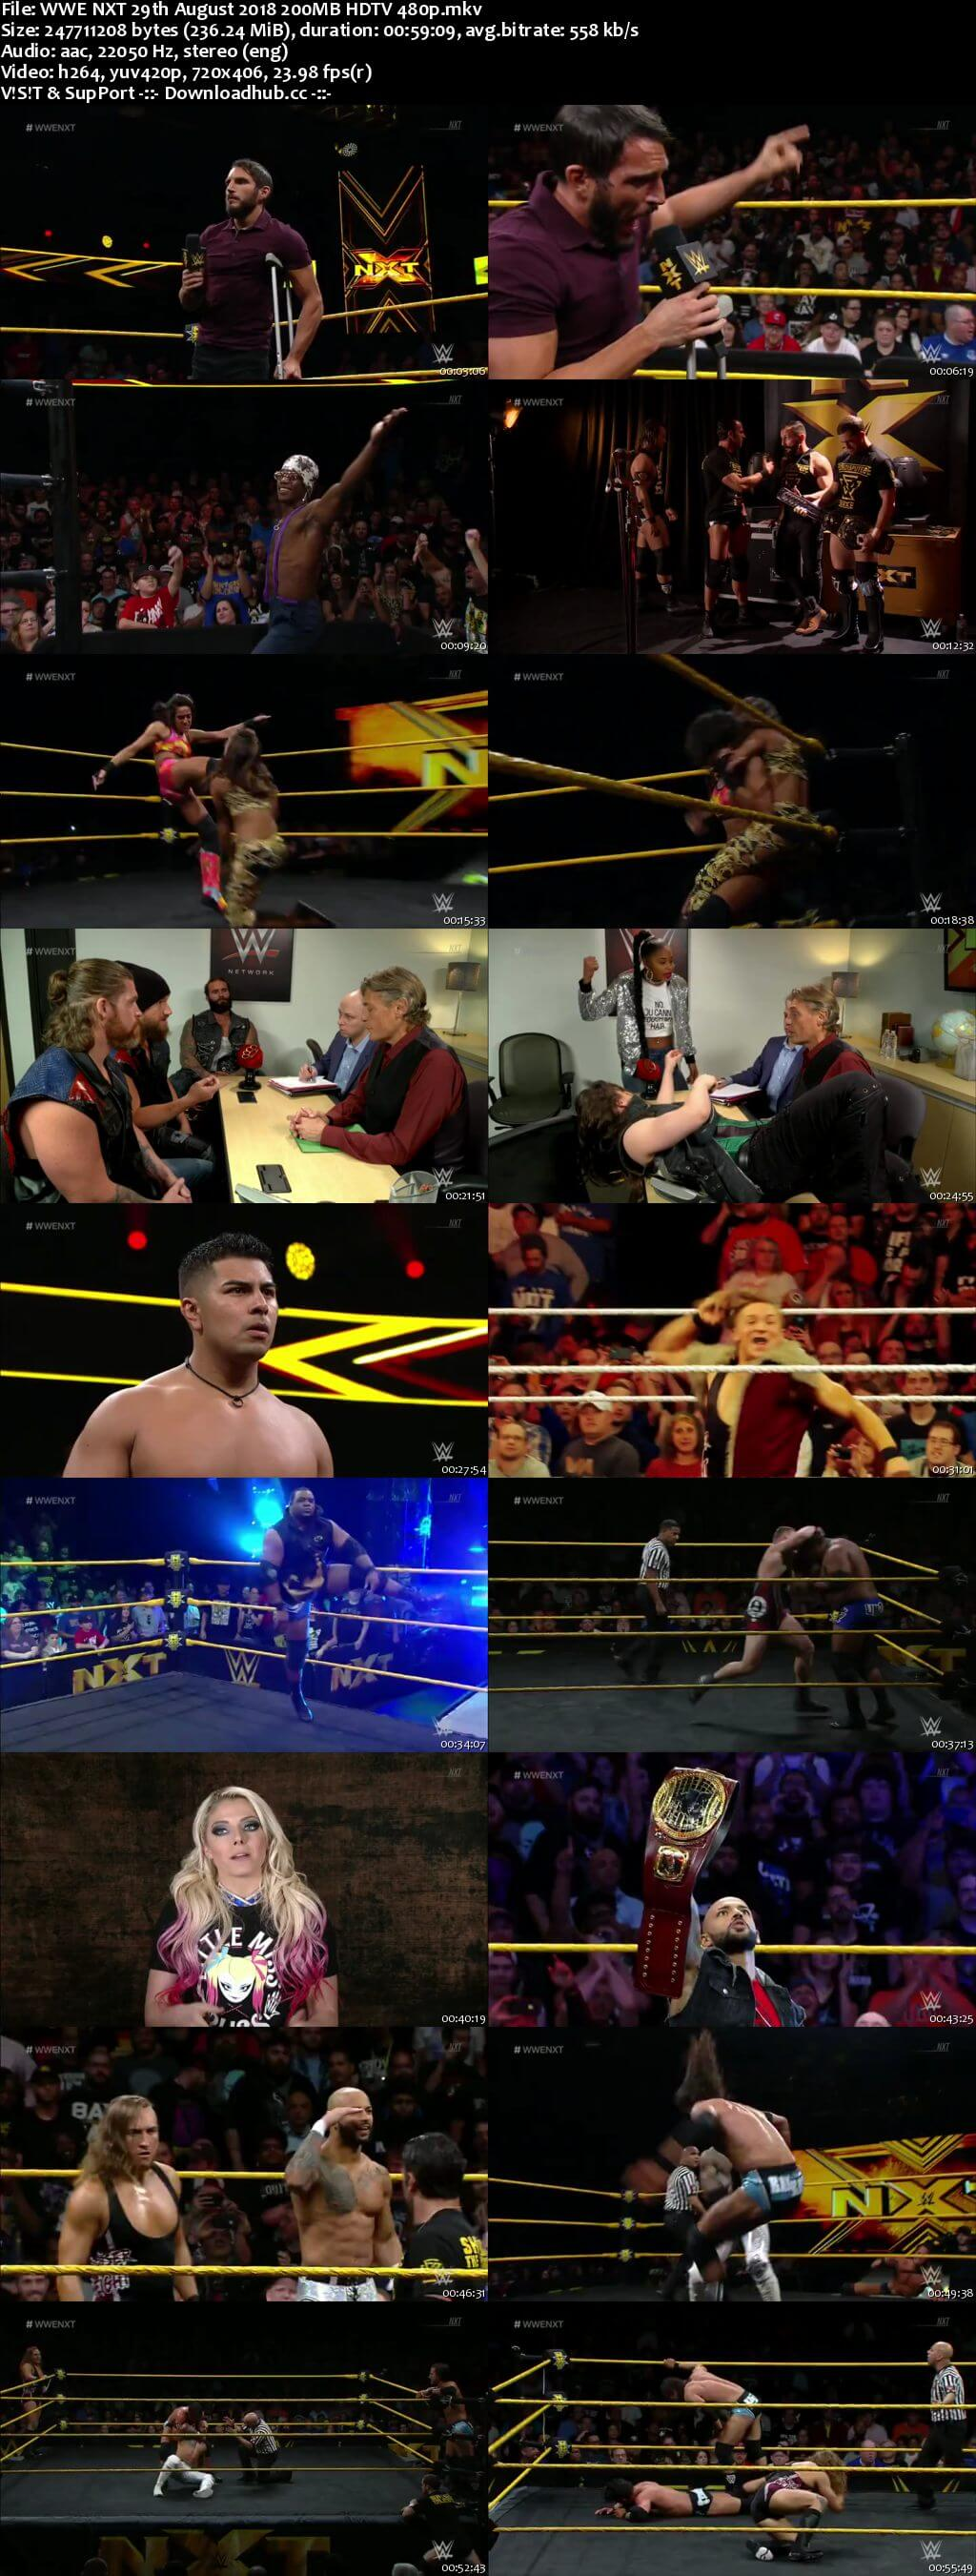 WWE NXT 29 August 2018 480p HDTV Download